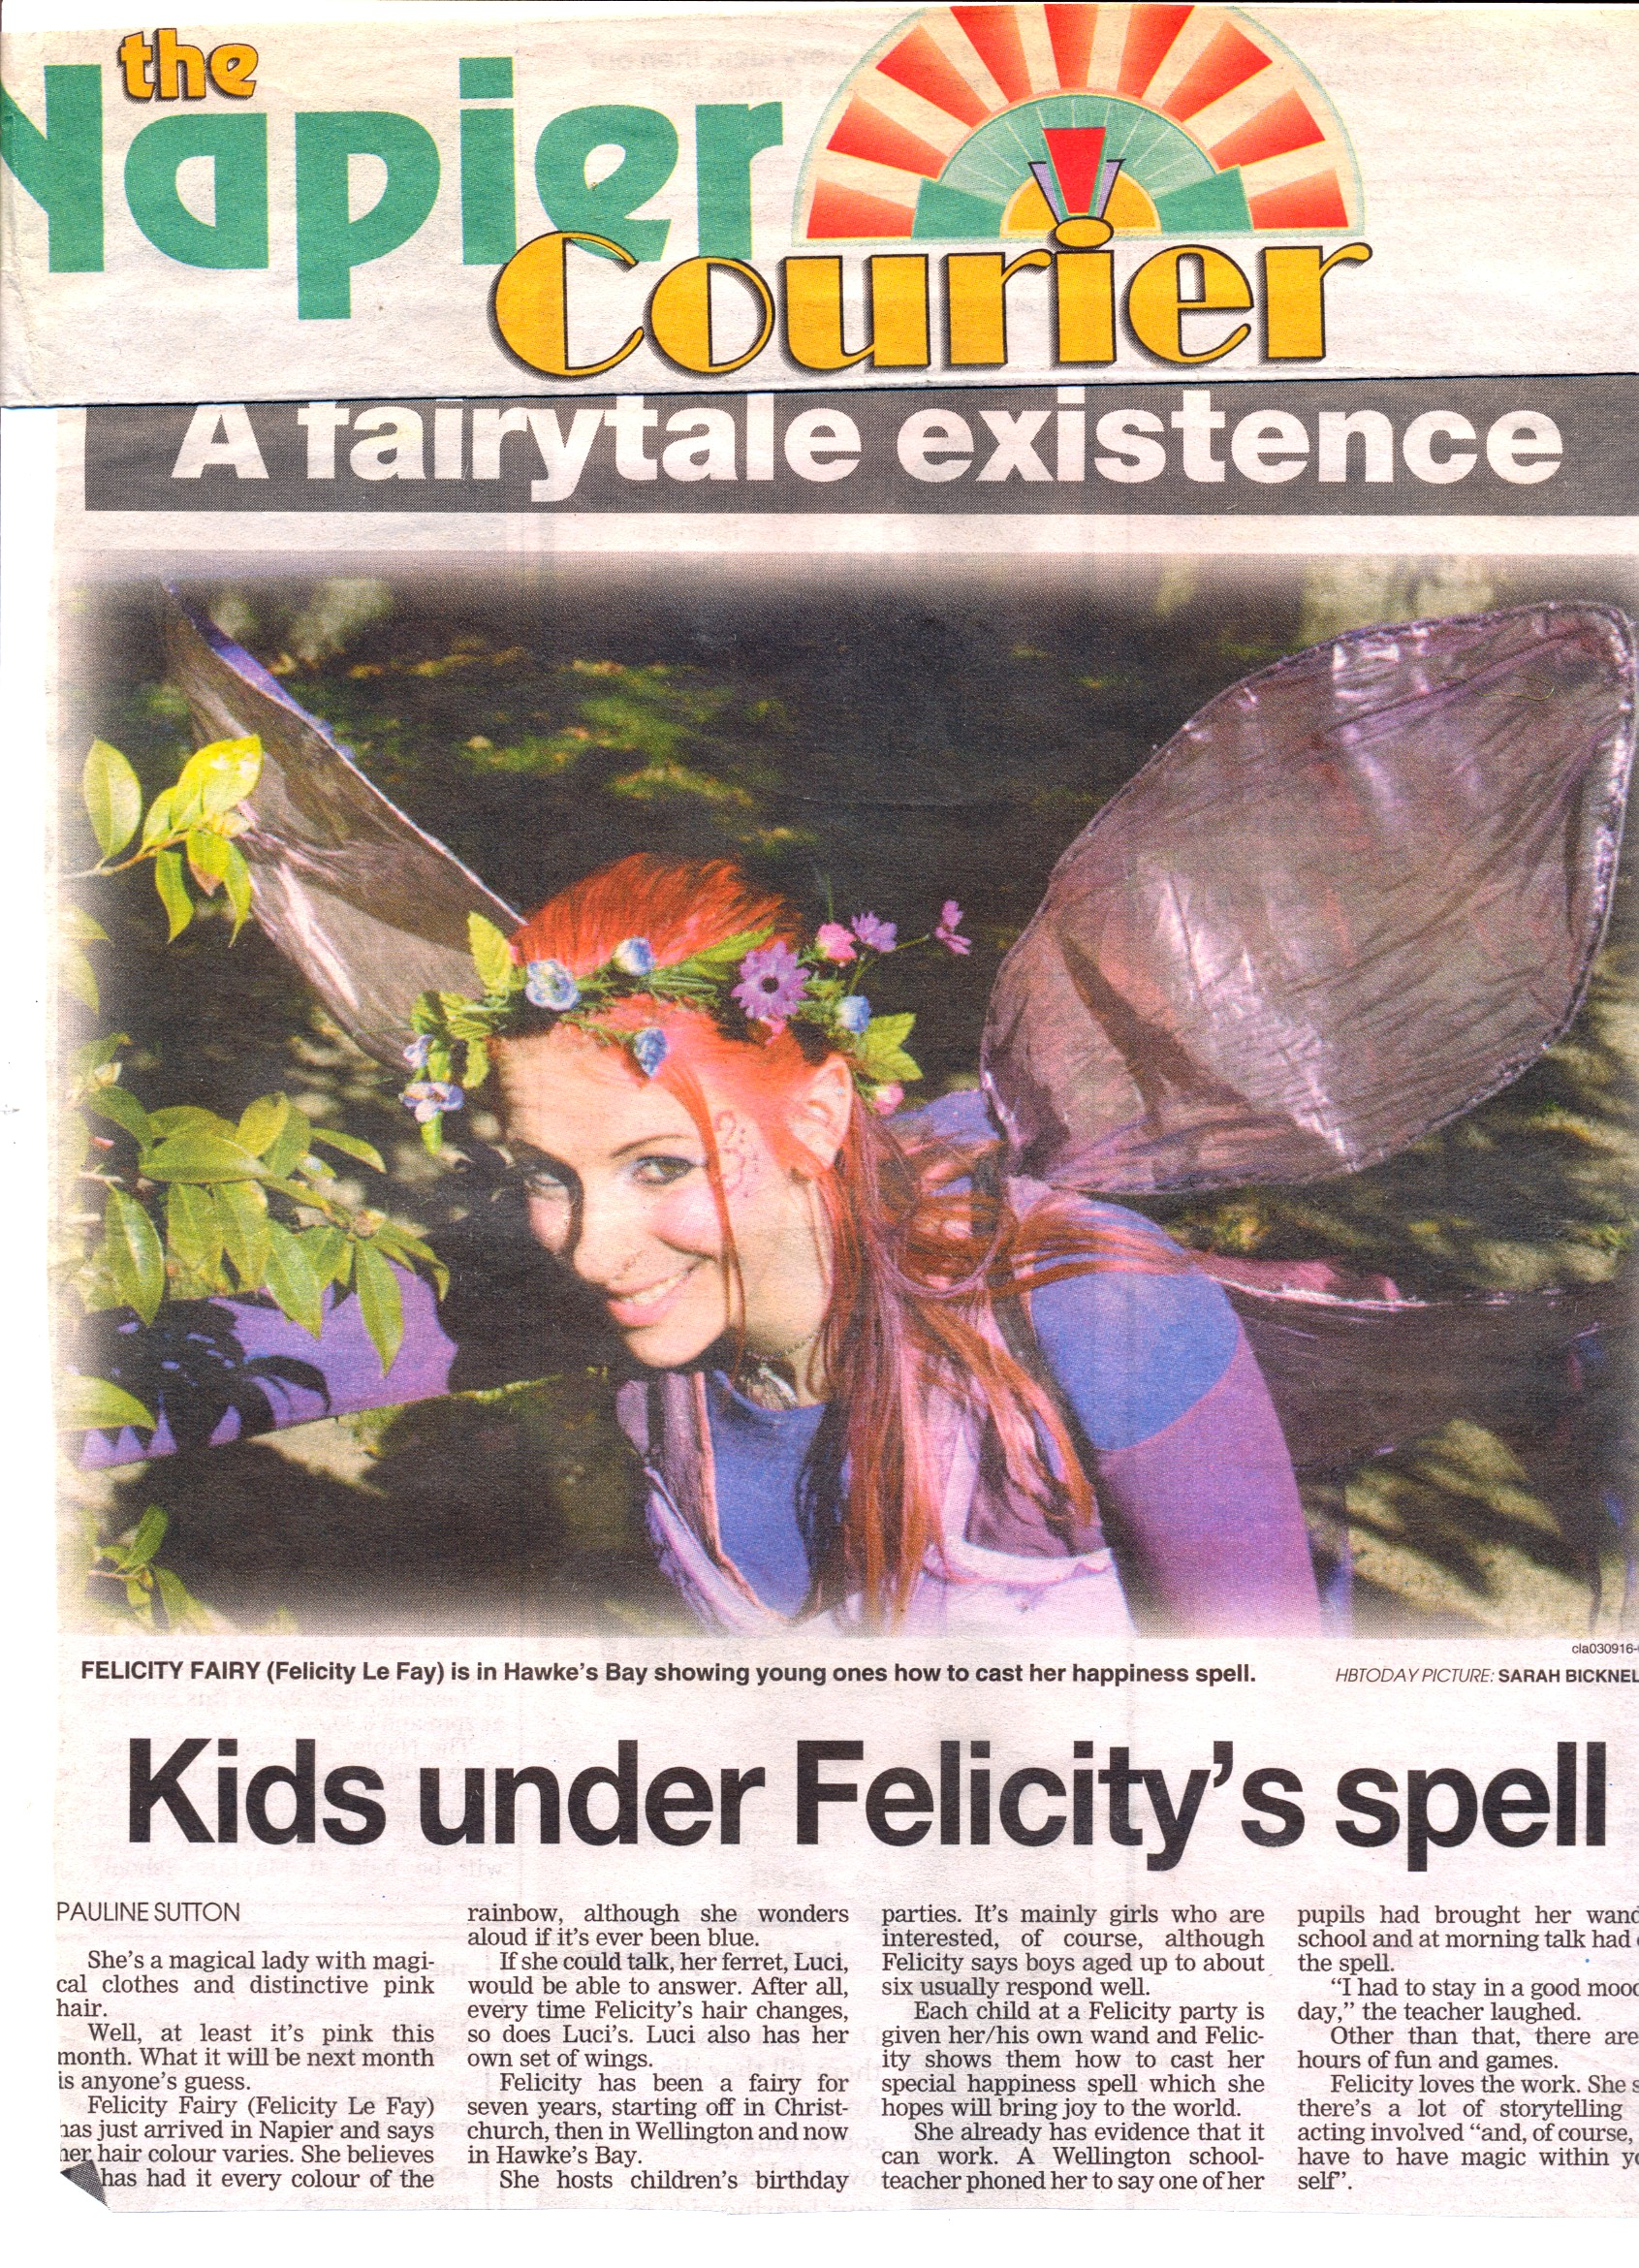 Cover of the Napier Chronicle, New Zealand